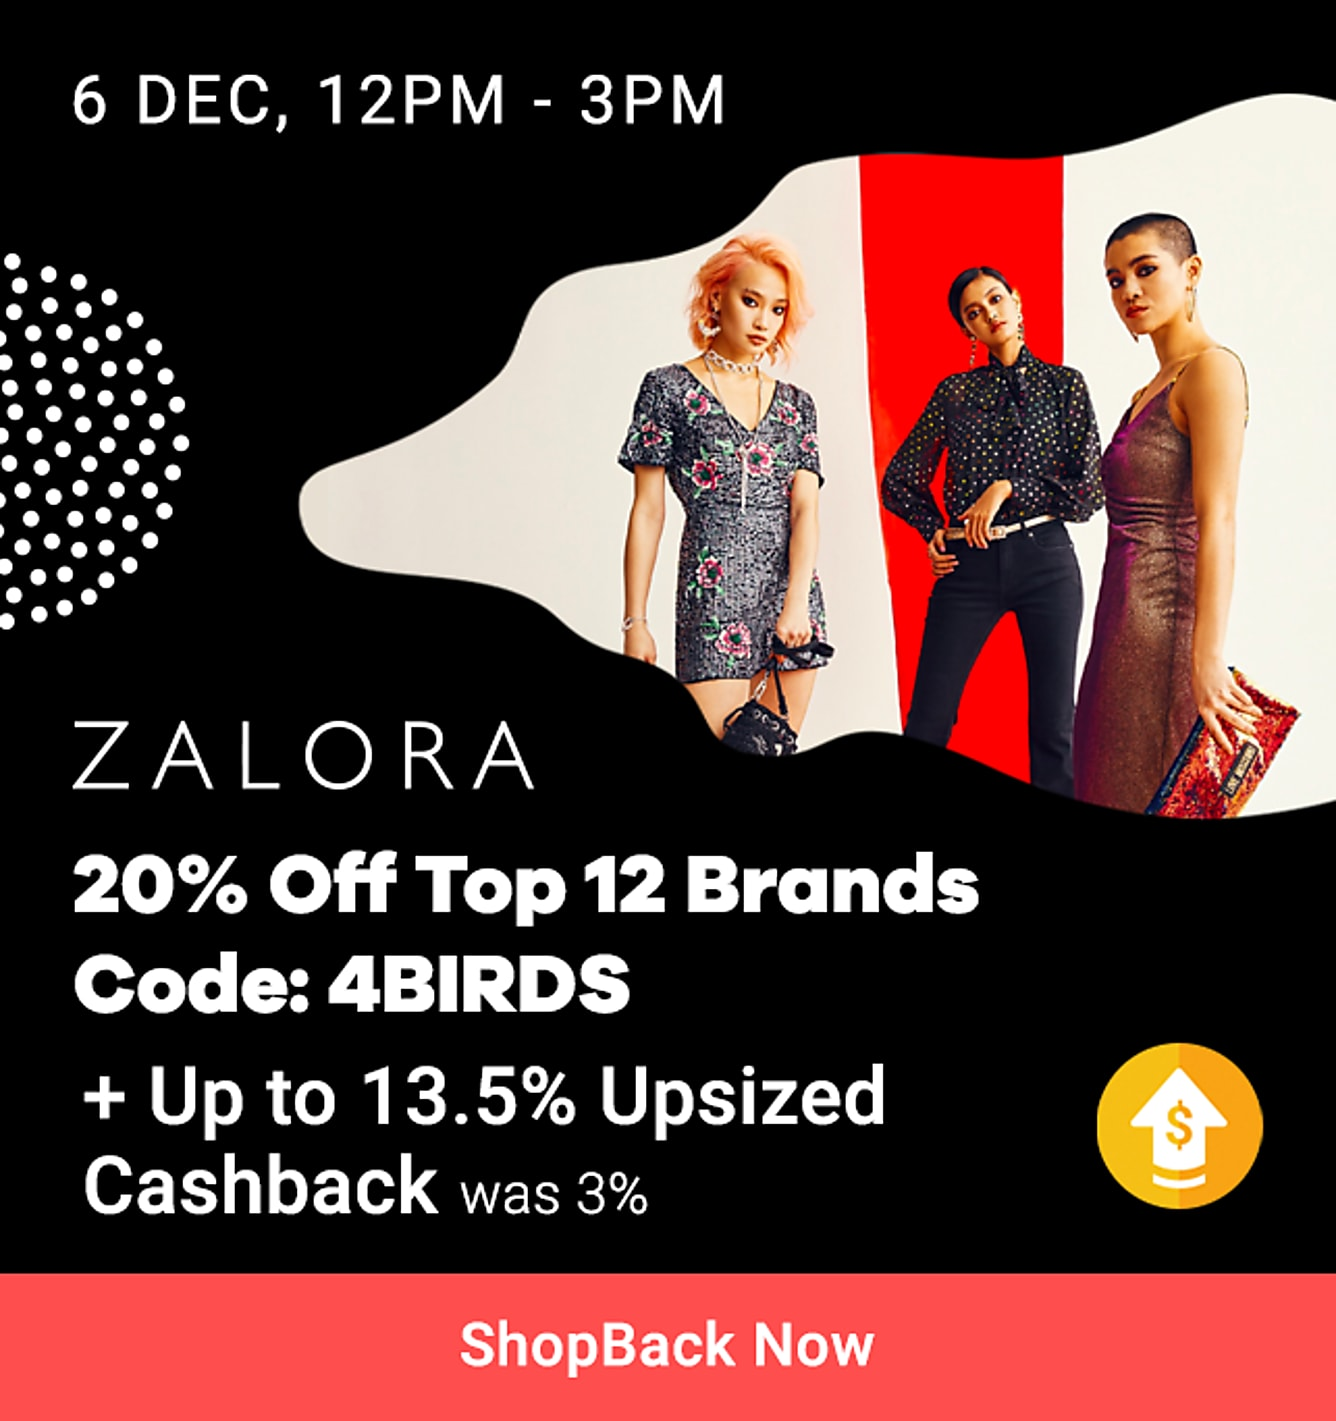 Zalora_12.12.2019_3 Dec-13 Dec 2019